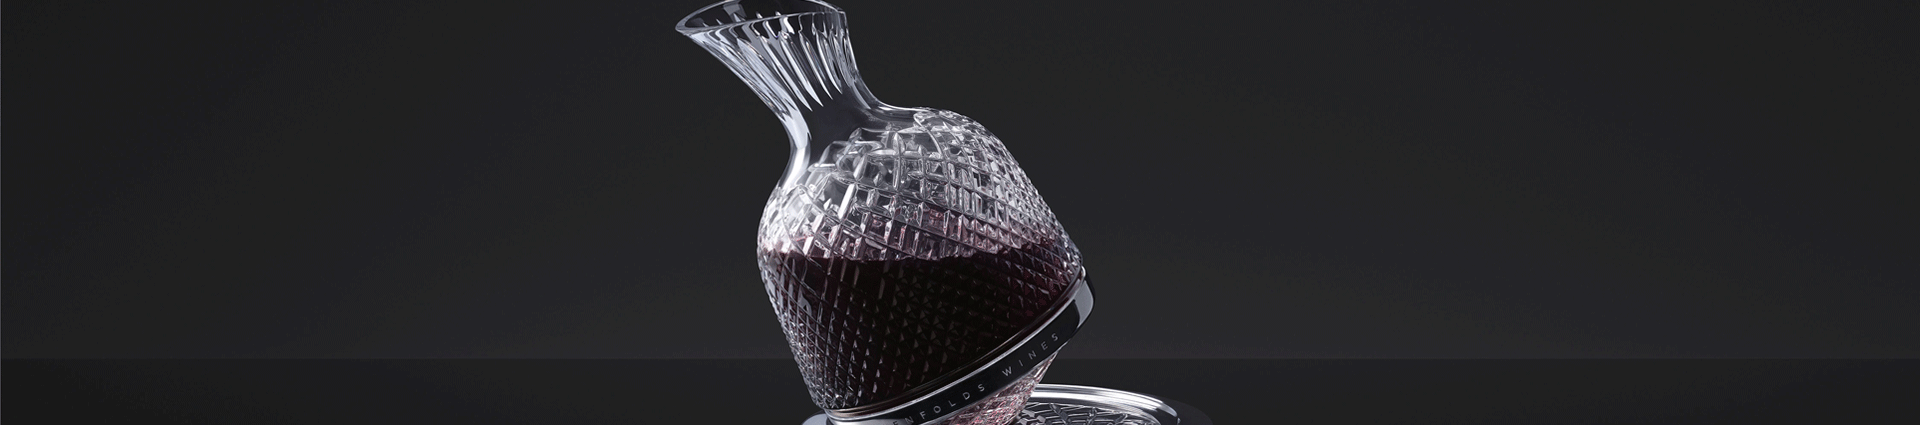 Saint Louis x Penfolds crystal decanter